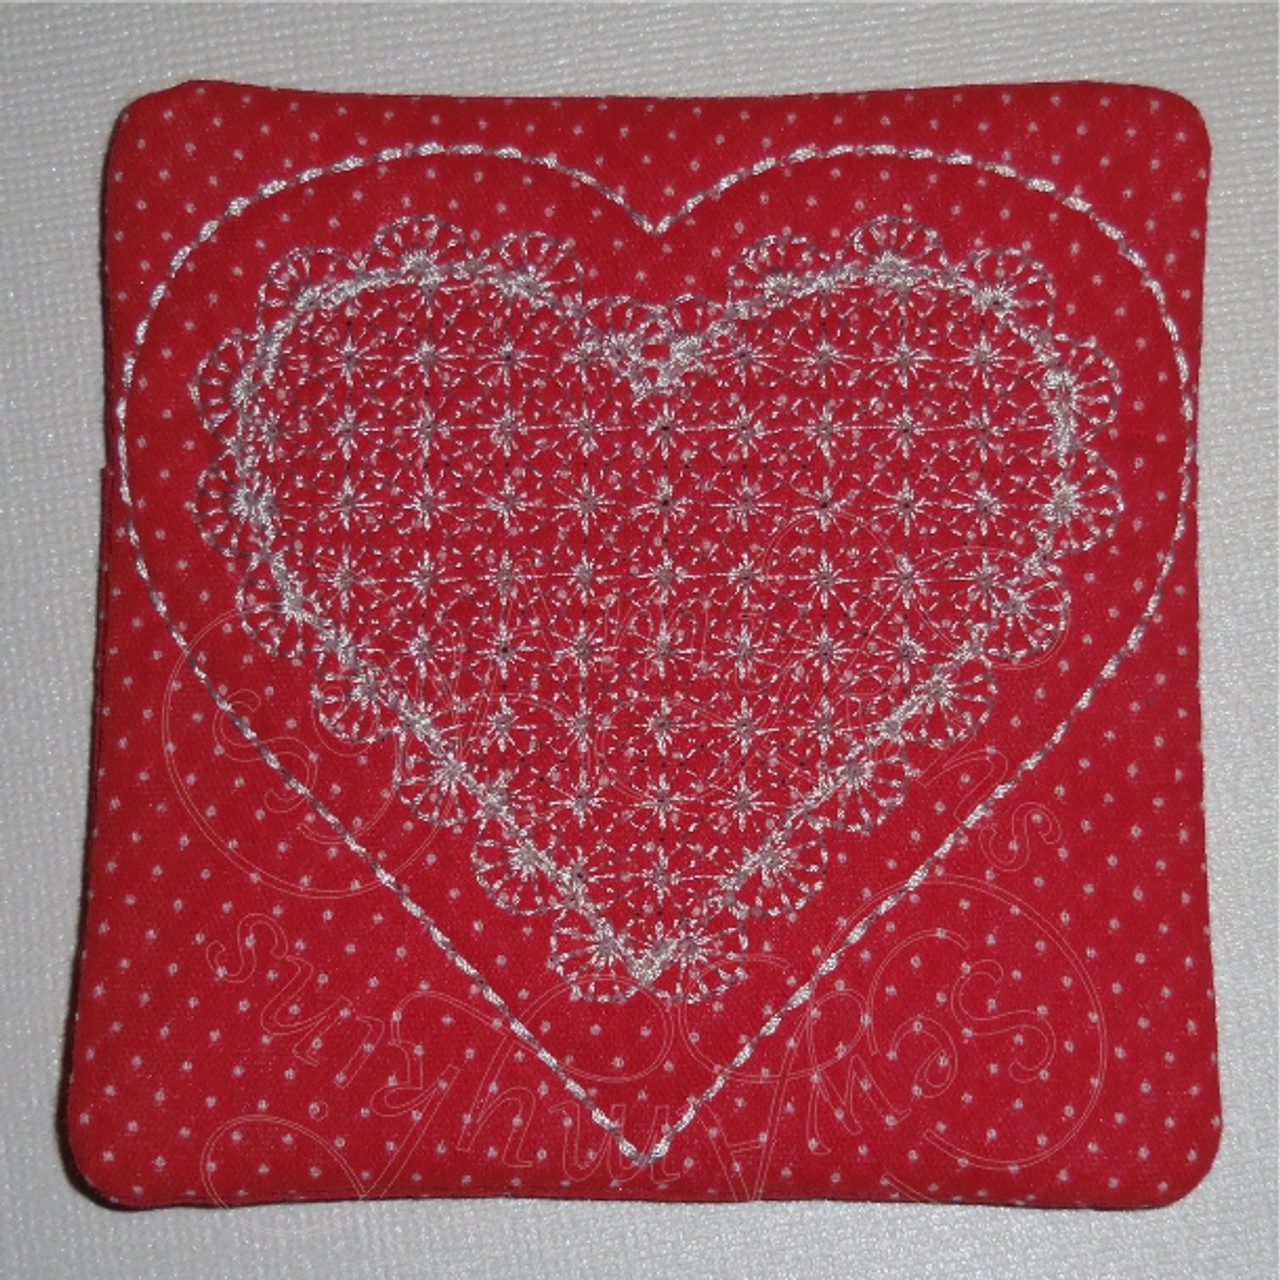 Heart lace look Coaster applique in the hoop ITH - SewAmykins